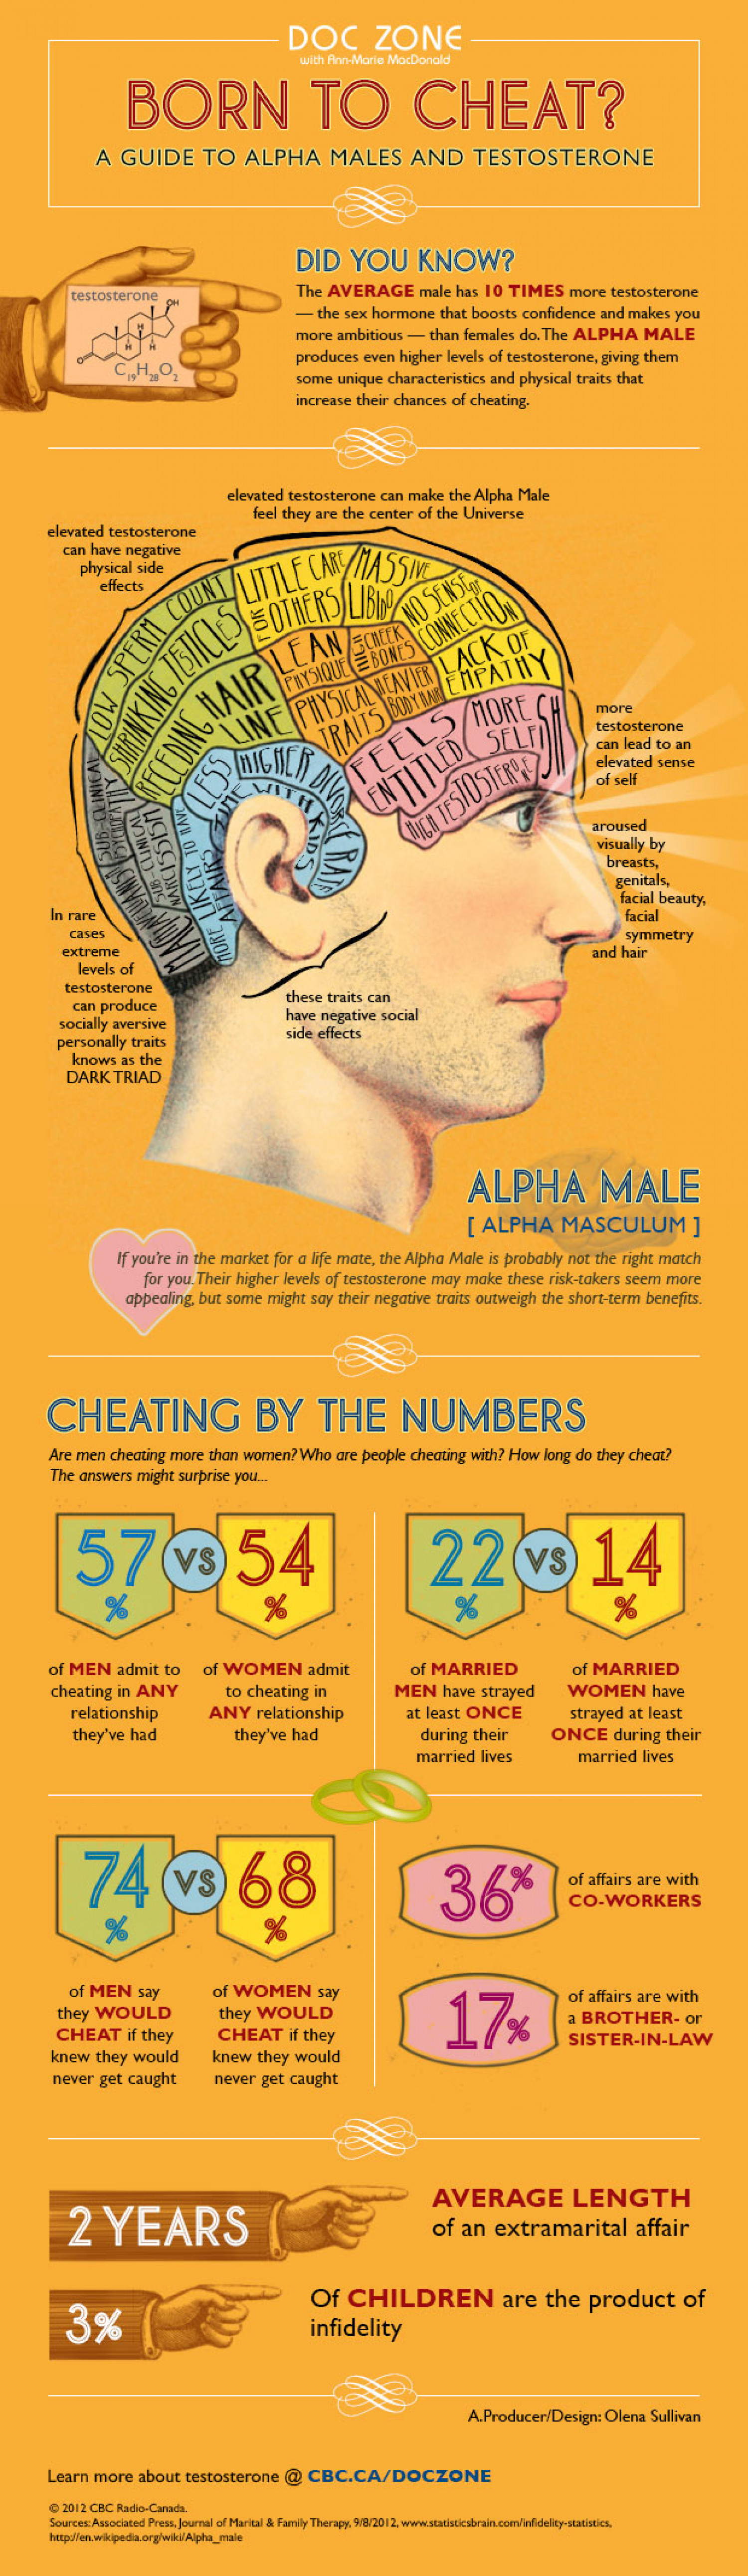 Born to Cheat? Infographic